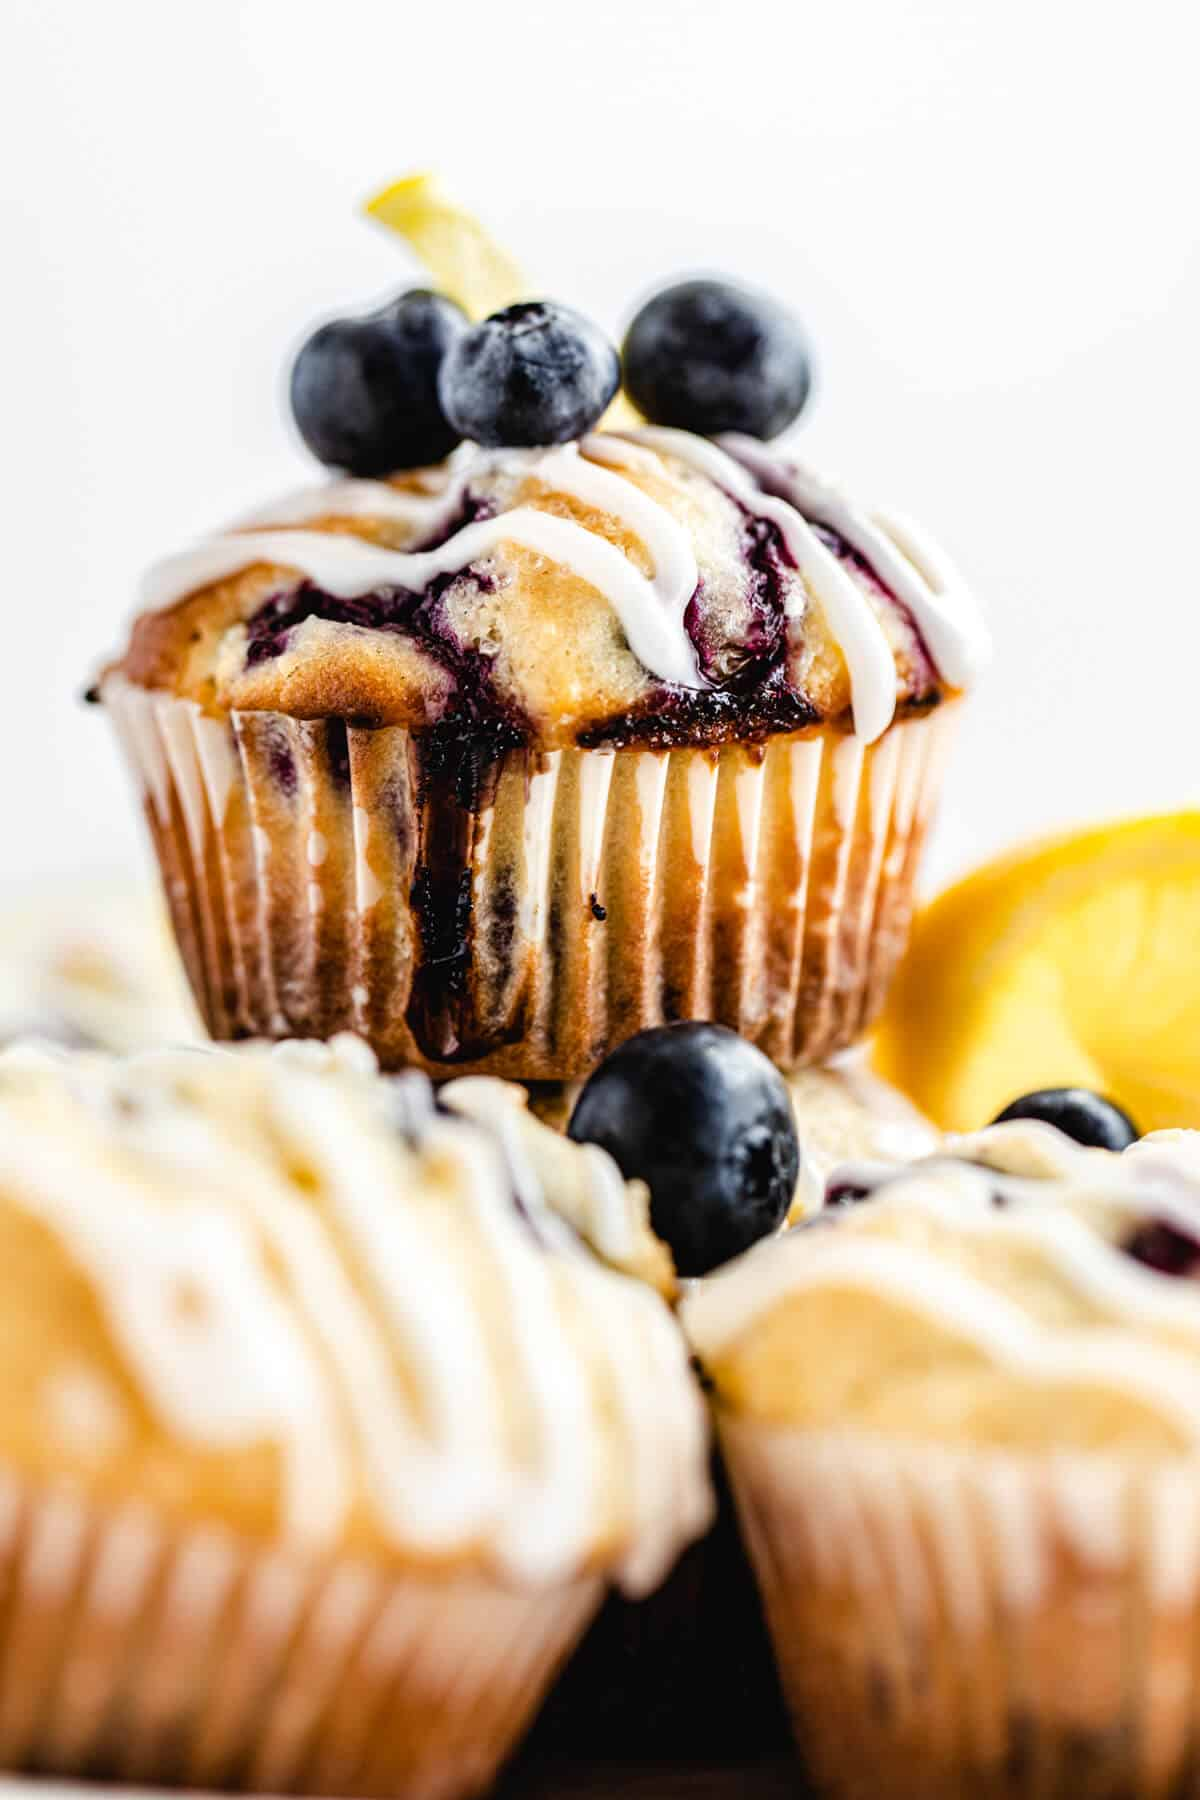 close up of blueberry muffin on top of other muffins